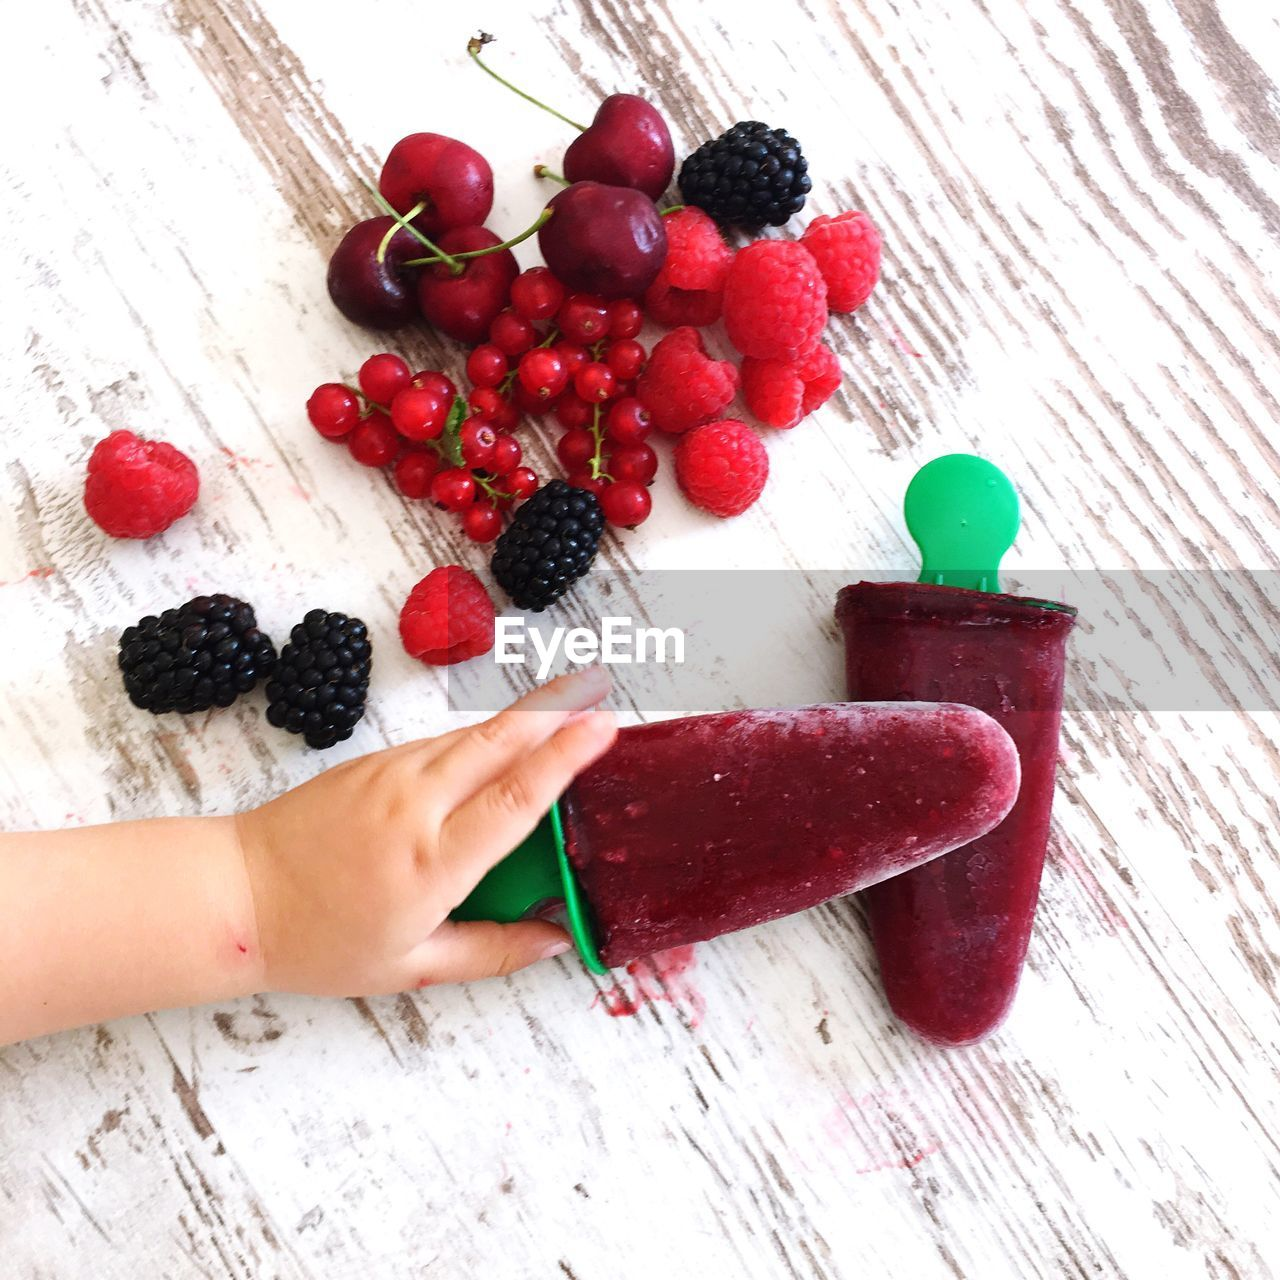 food, food and drink, berry fruit, healthy eating, human hand, fruit, wellbeing, red, freshness, high angle view, one person, human body part, table, indoors, hand, real people, holding, finger, wood - material, human finger, temptation